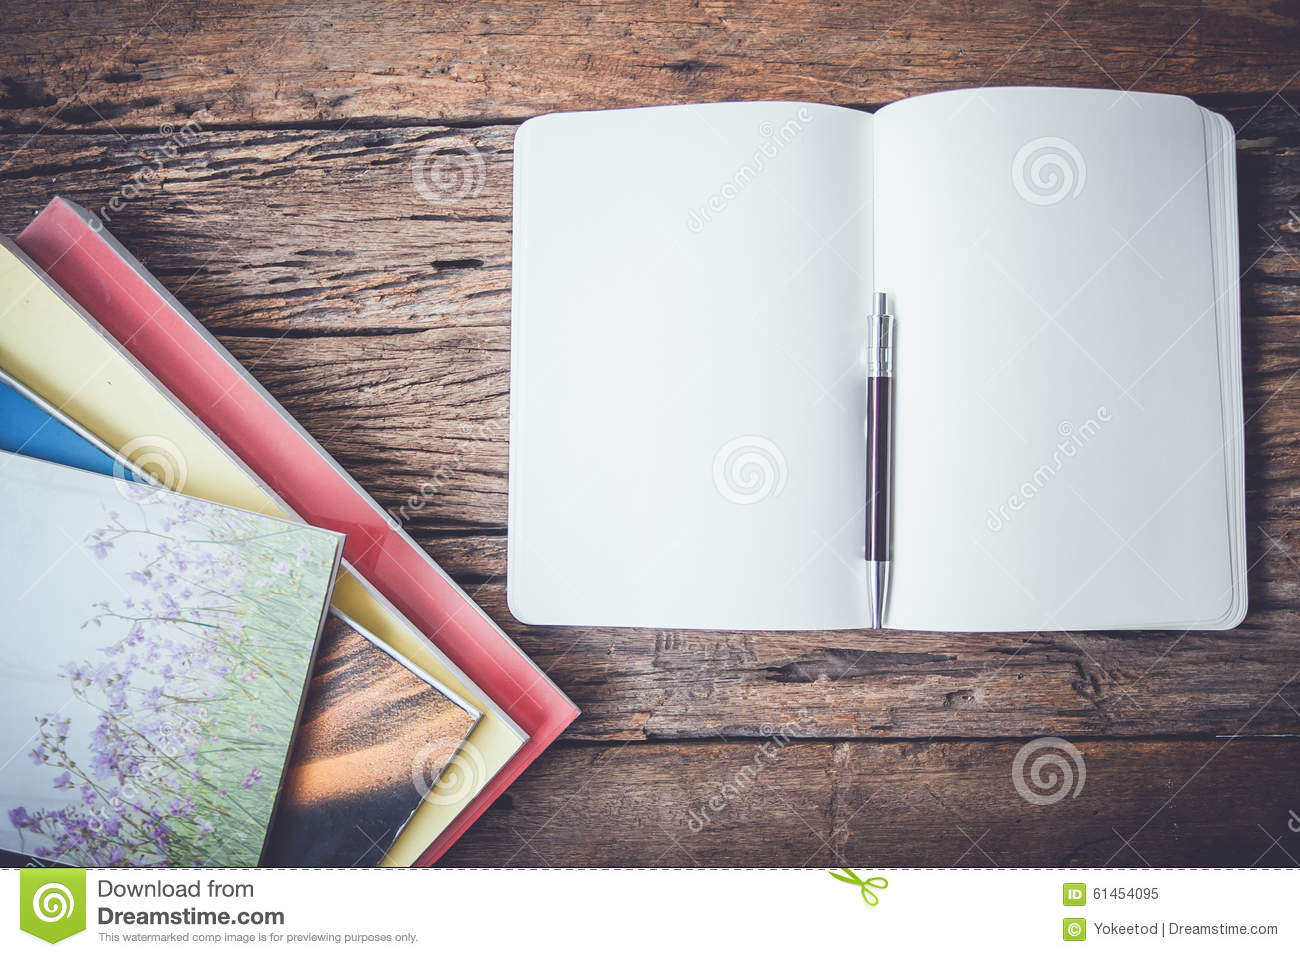 Blank pages to color on - White Blank Pages Sketch Book On Wood Table